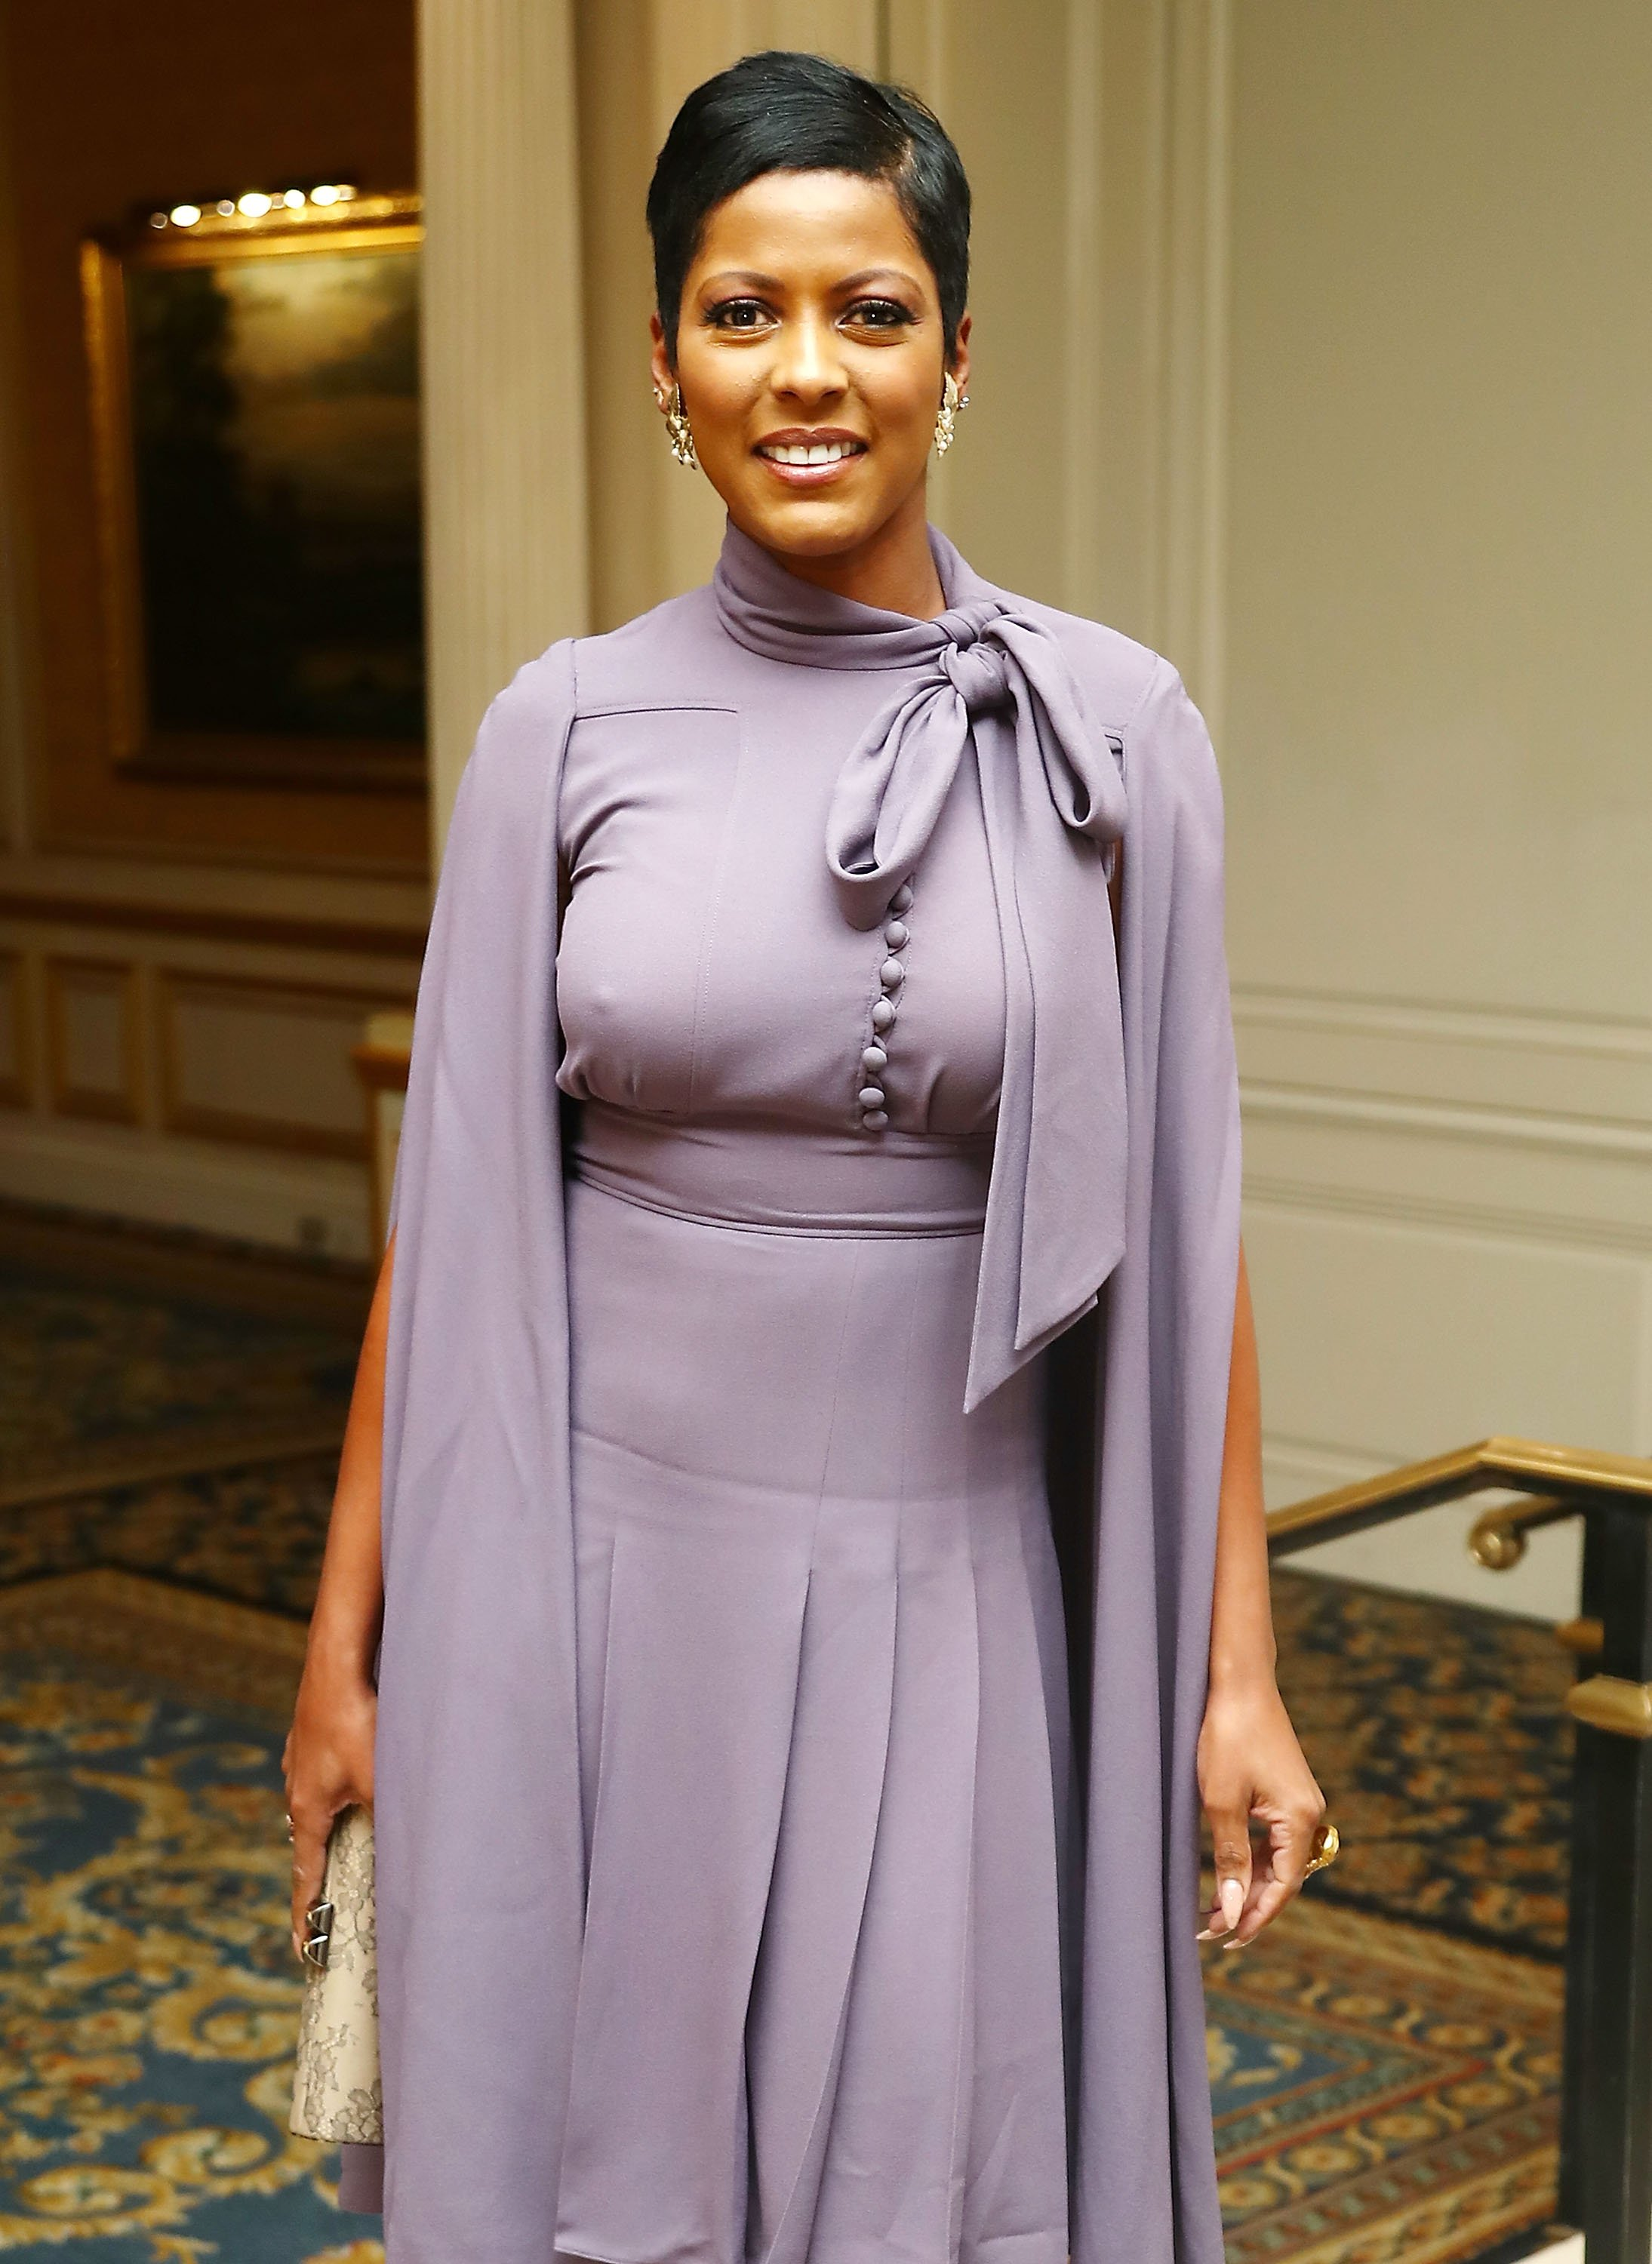 Tamron Hall at the 11th annual Moving Families Forward gala on Oct. 23, 2017 in New York City | Photo: Getty Images